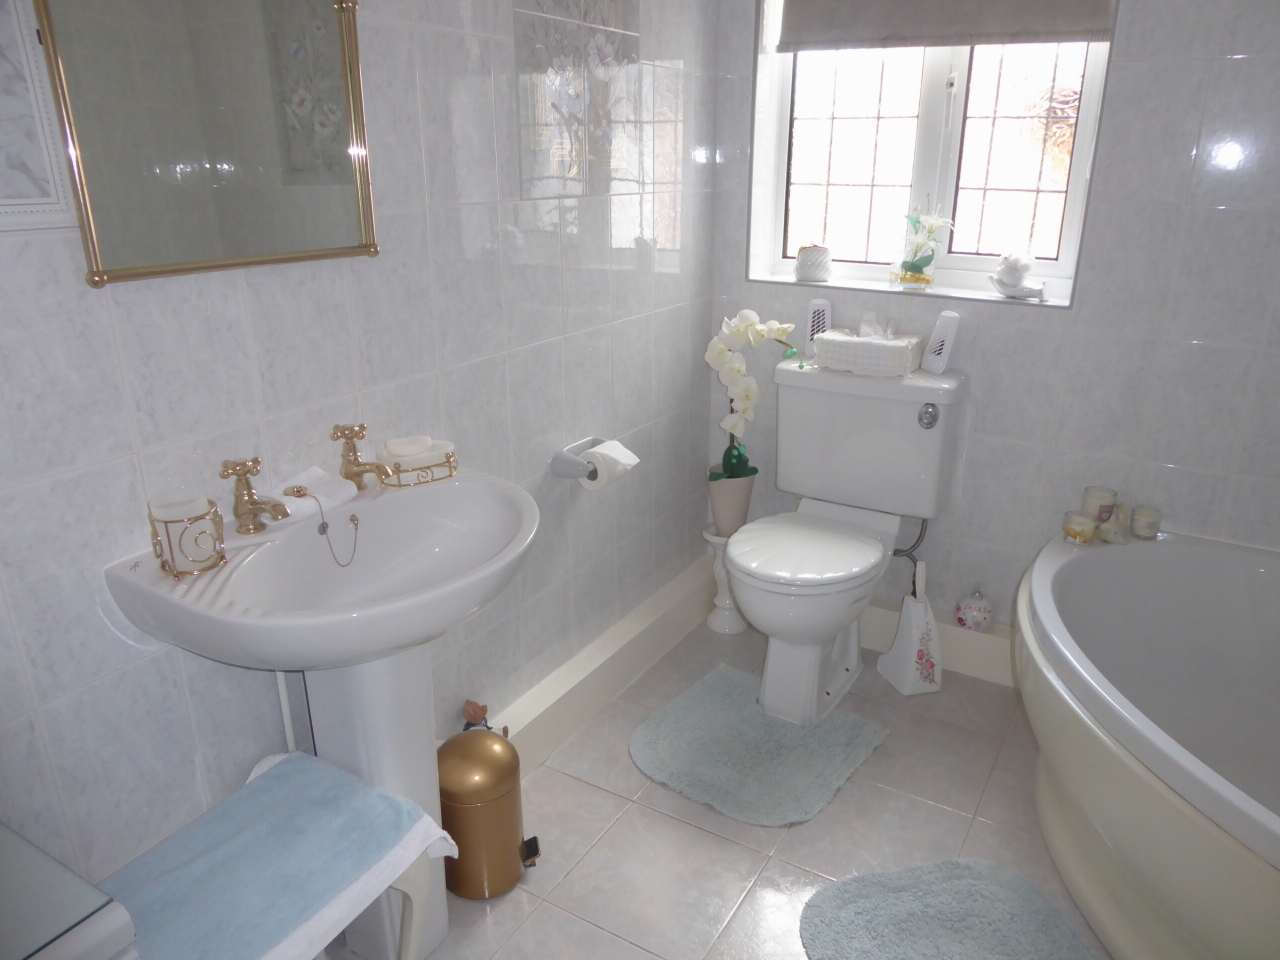 3 bedroom detached bungalow SSTC in Abergele - Photograph 12